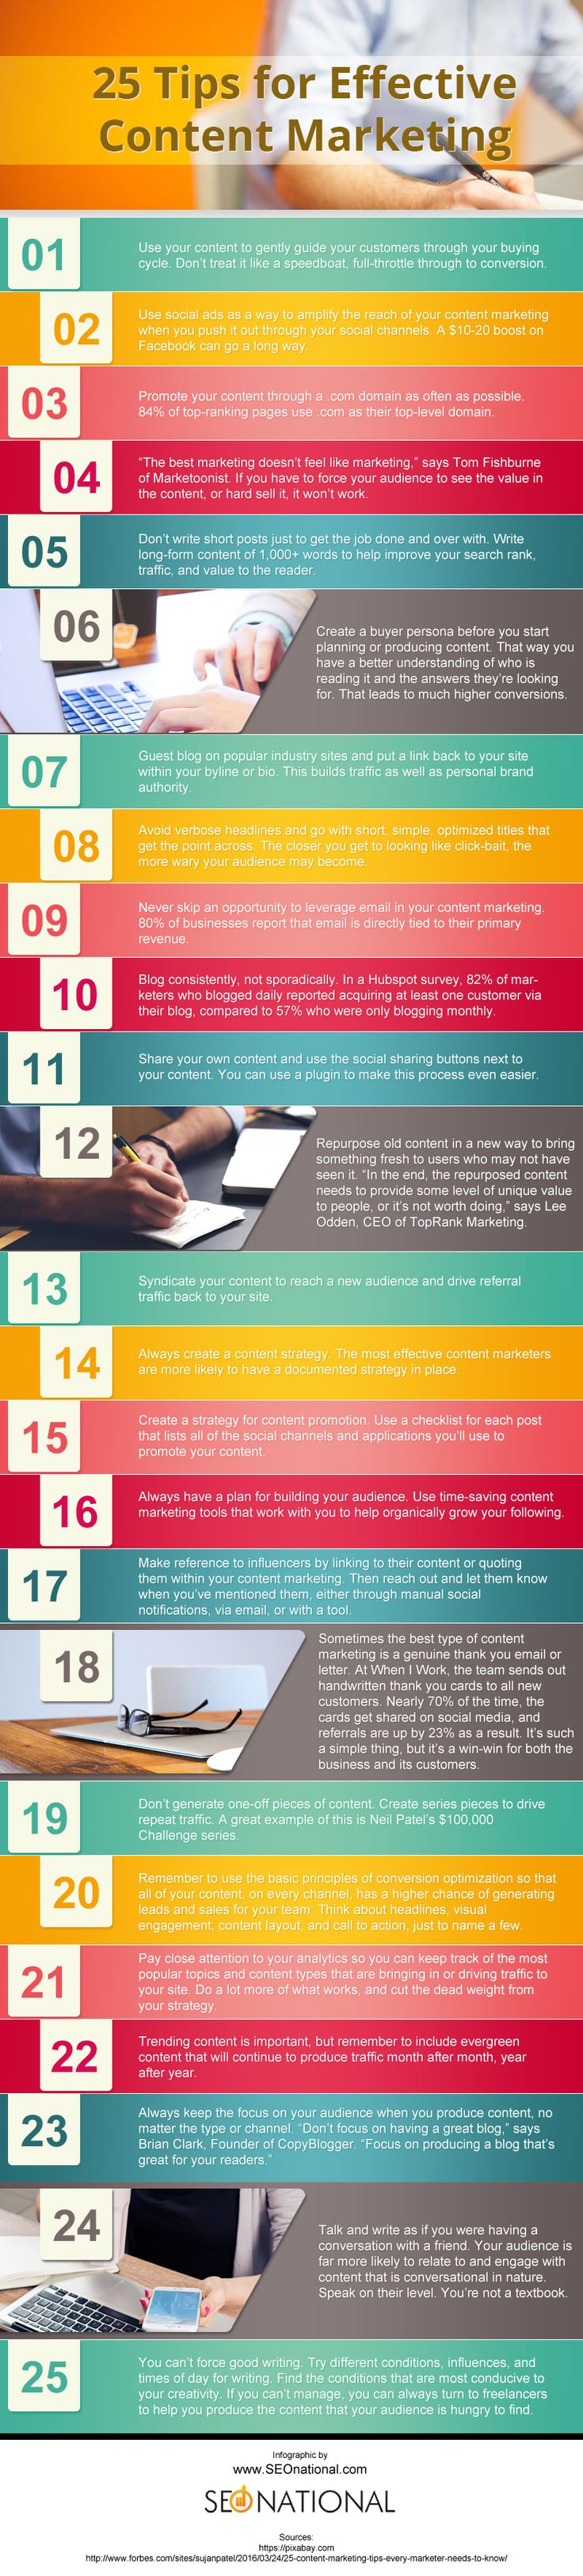 25 tips for effective content marketing tips